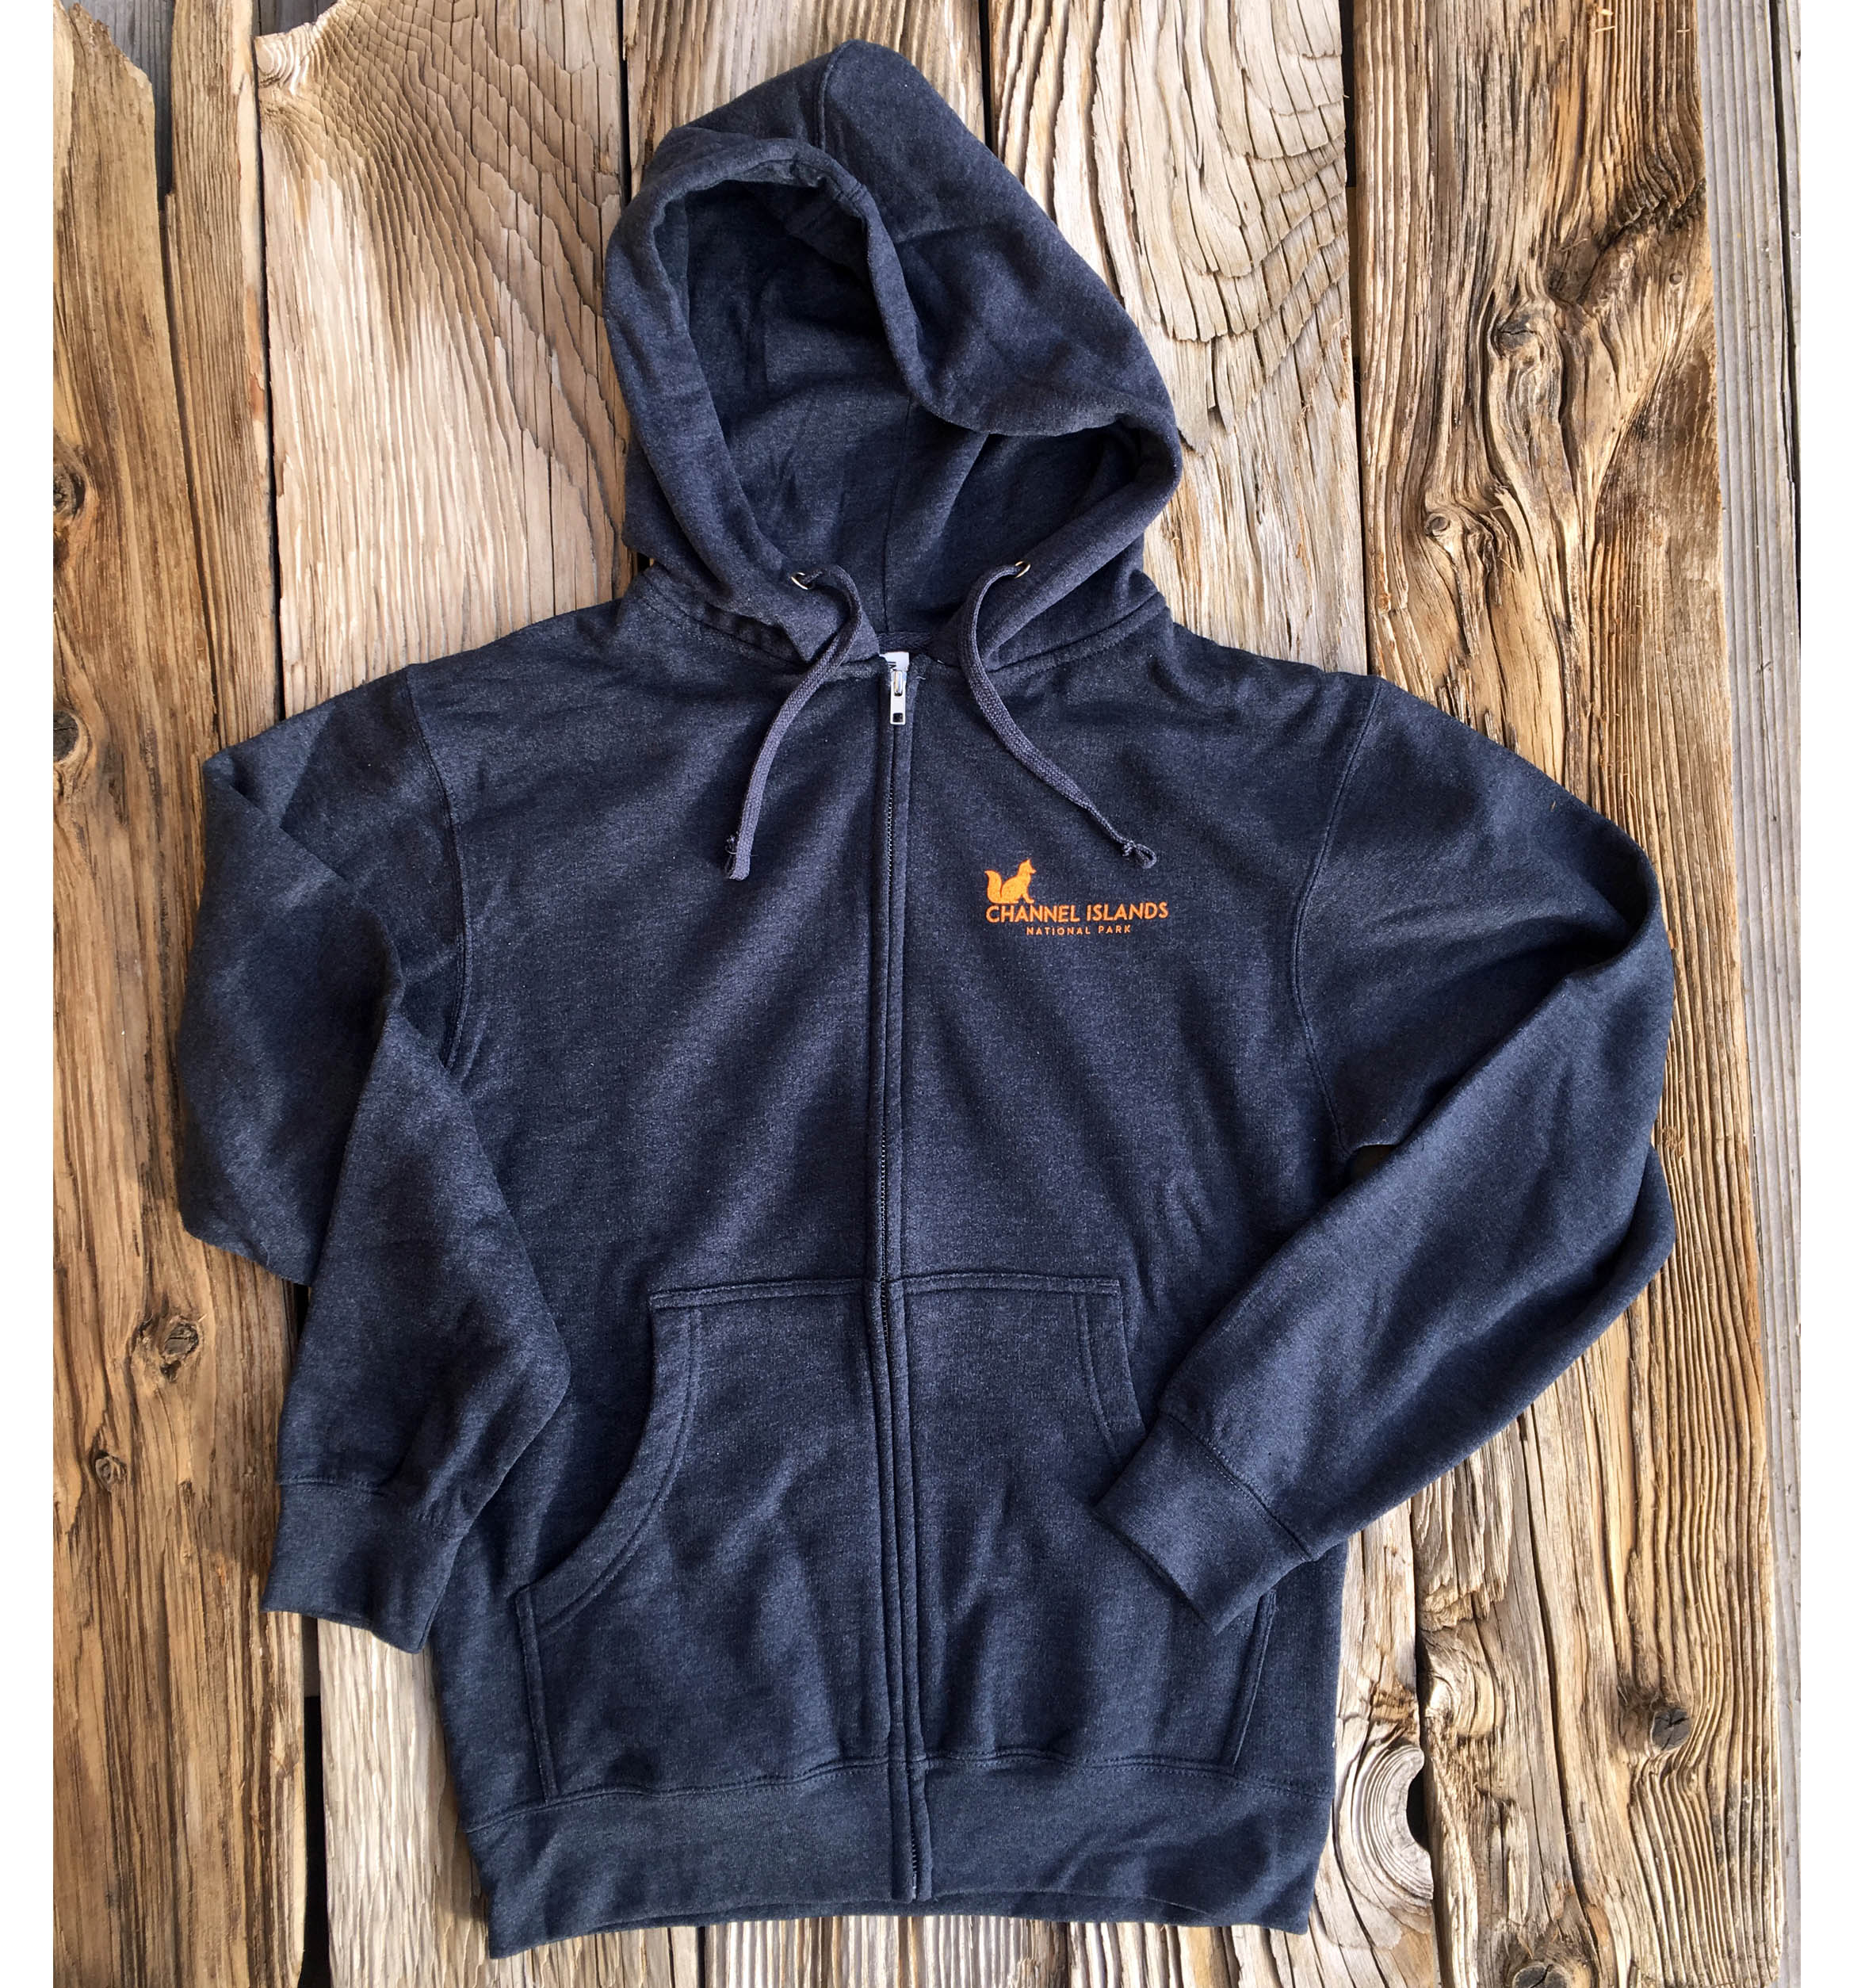 Channel Islands Midweight Full Zip